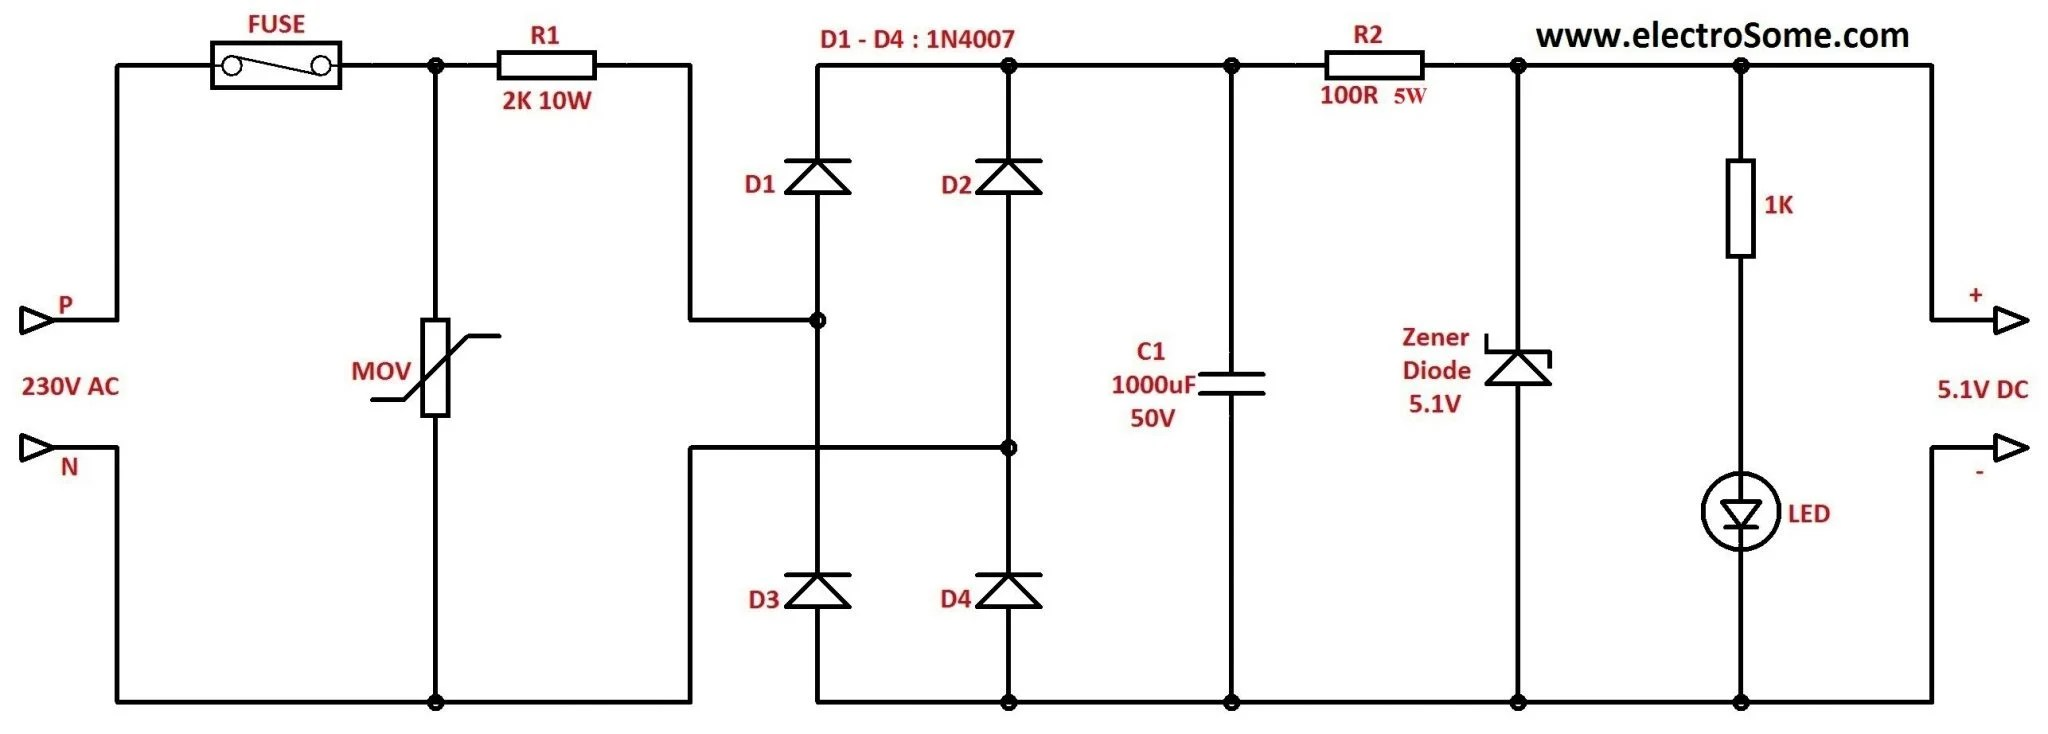 Awesome how to wire downlights gallery electrical circuit diagram wiring diagram mains downlights love wiring diagram ideas asfbconference2016 Image collections